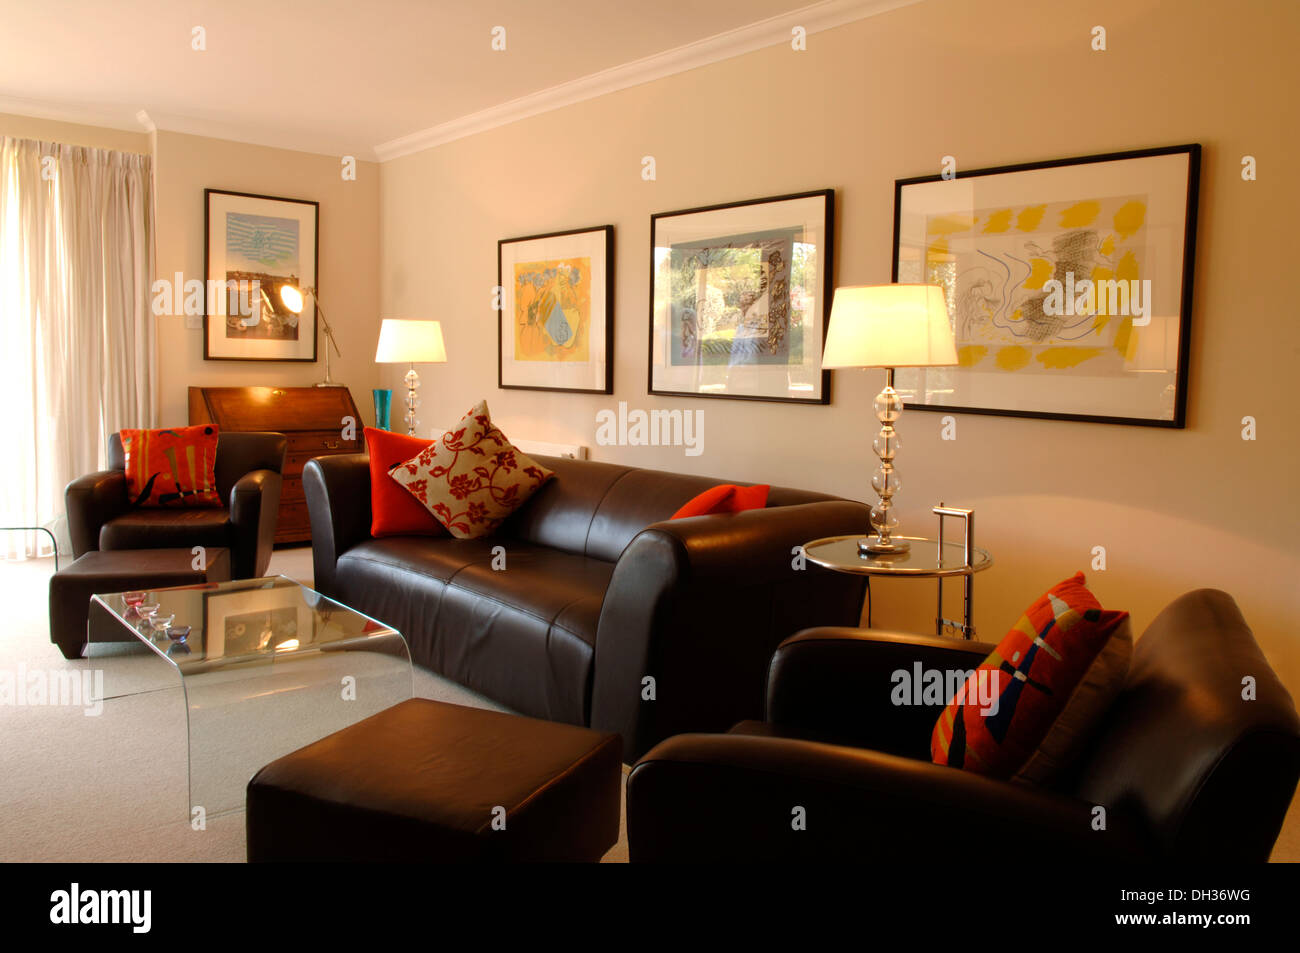 Living Room With Leather Sofa And Chairs, Glass Coffee Table, Red Throw  Cushions, Two Lamps And Art On The Walls Cream Carpets